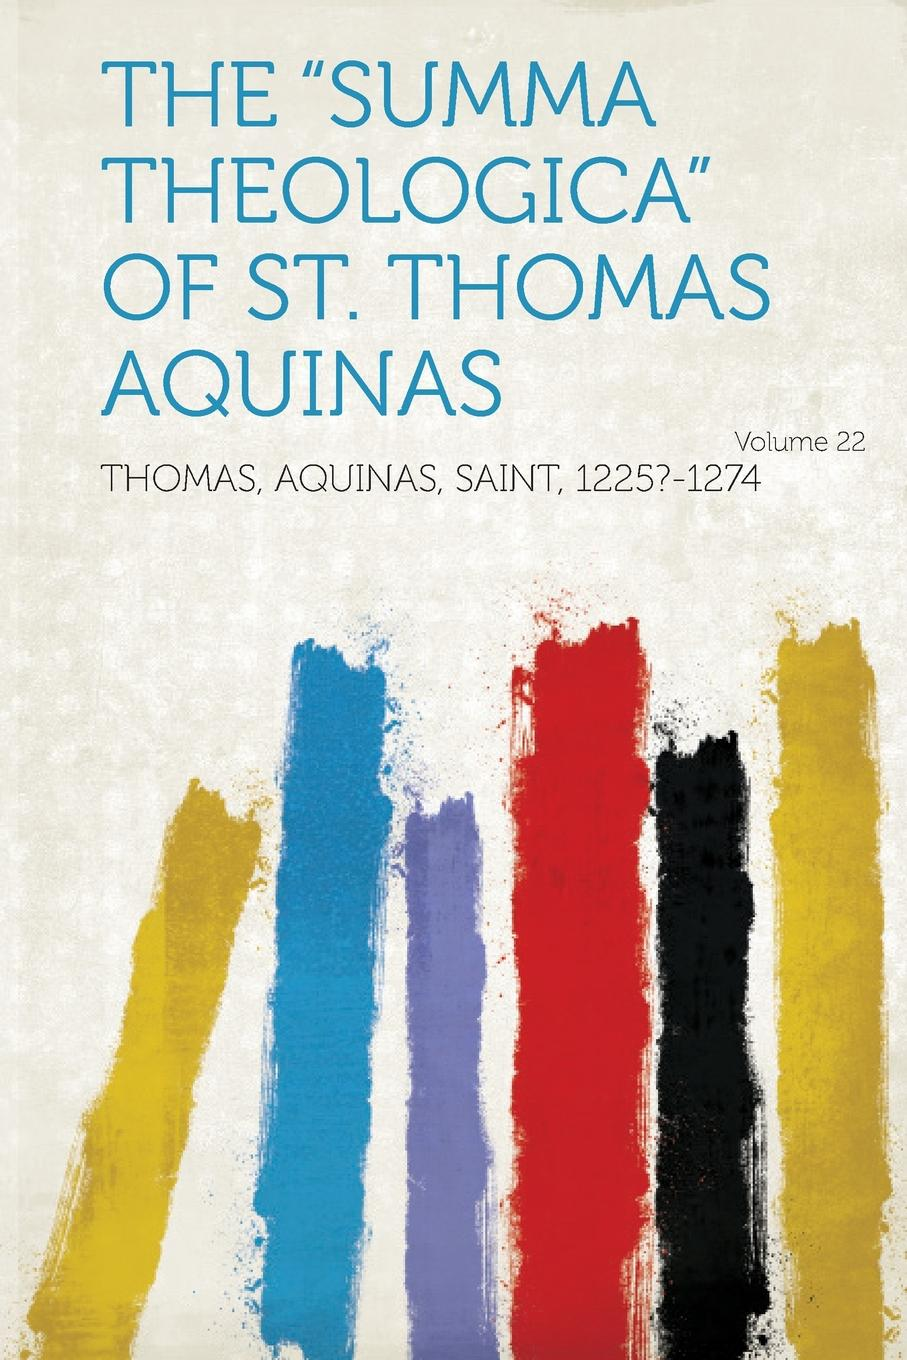 Thomas Aquinas The Summa Theologica of St. Thomas Aquinas Volume 22 aquinas saint thomas aquinas ethicus or the moral teaching of st thomas a translation of the principle portions of the second part of the summa theologica with notes